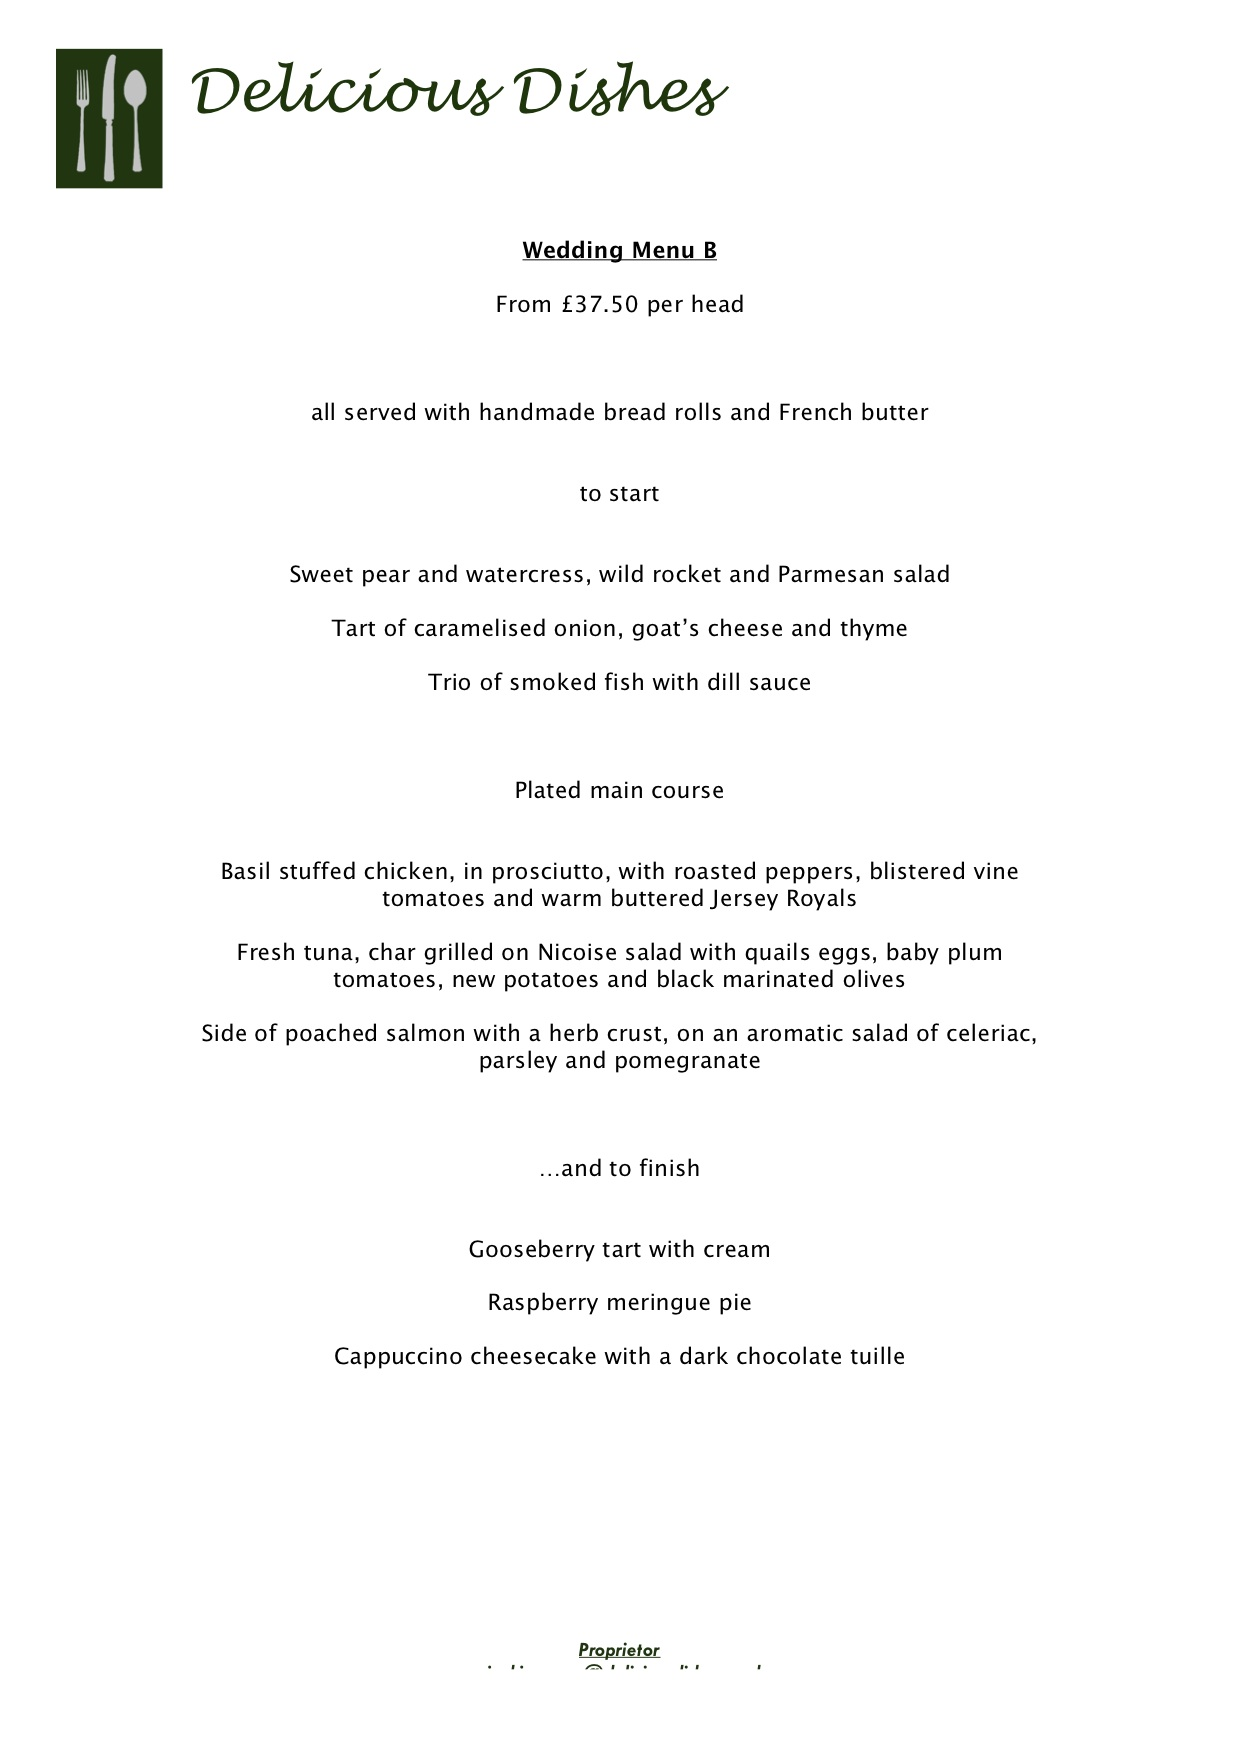 wedding-menu-B-From-£37.50-per-head